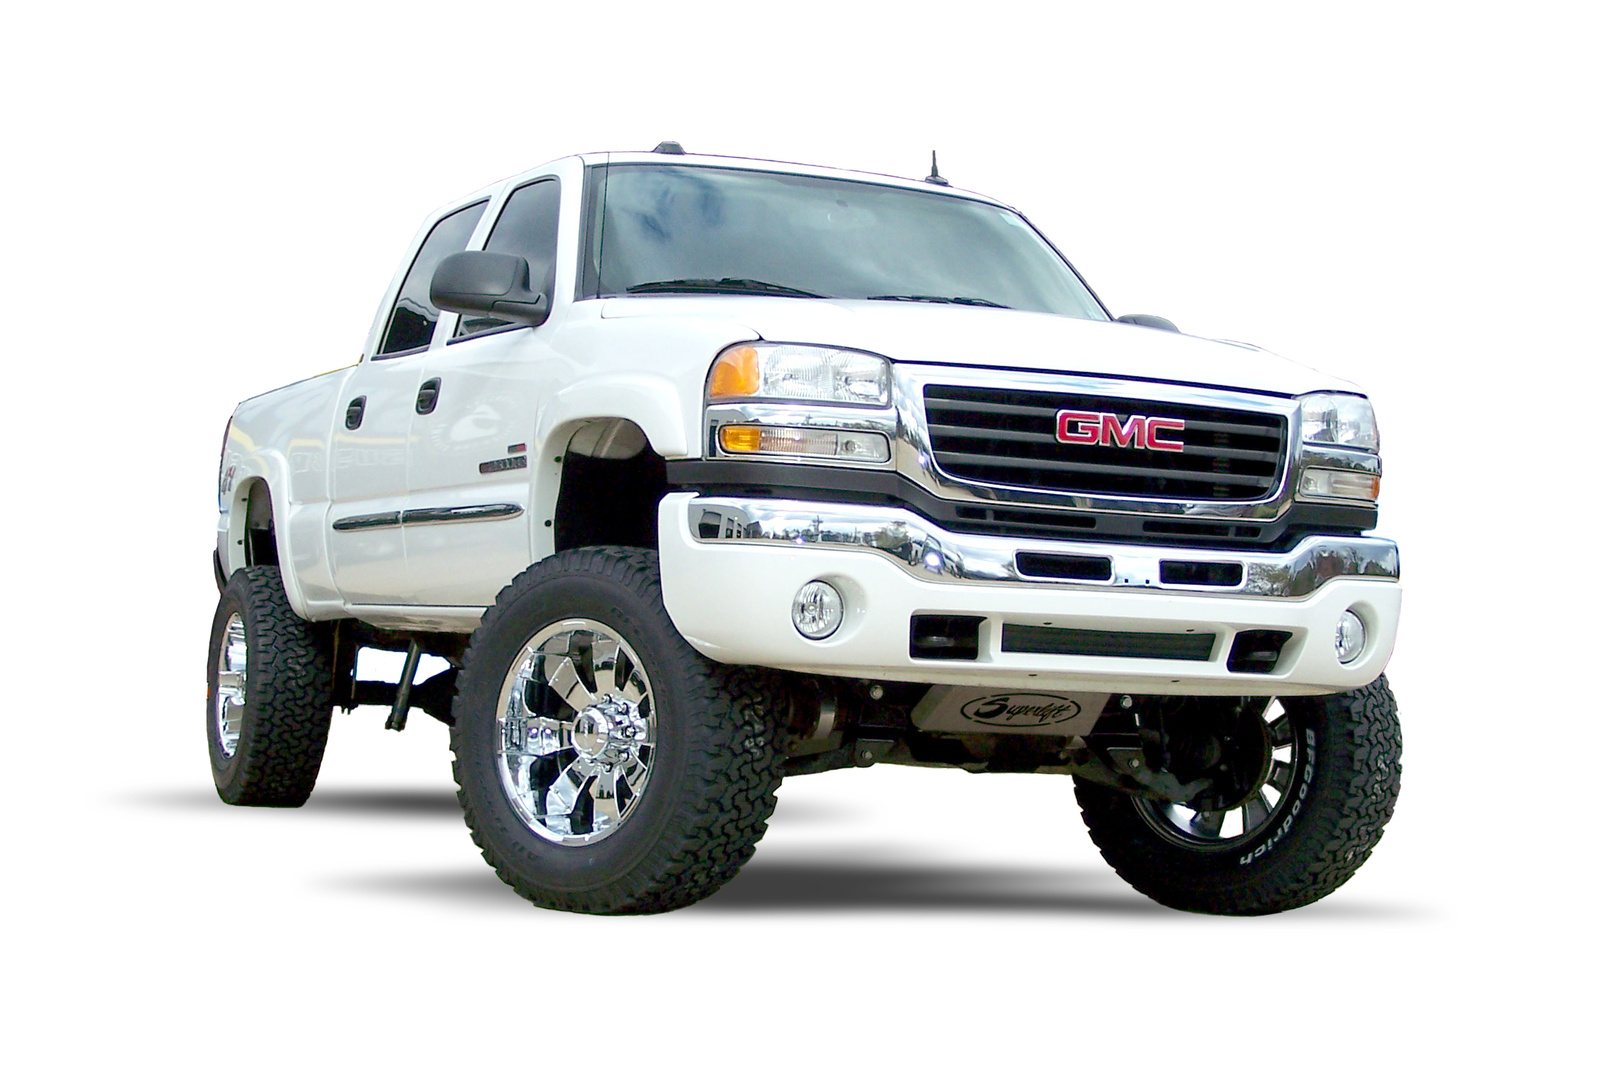 2006 Gmc Sierra 2500hd 14